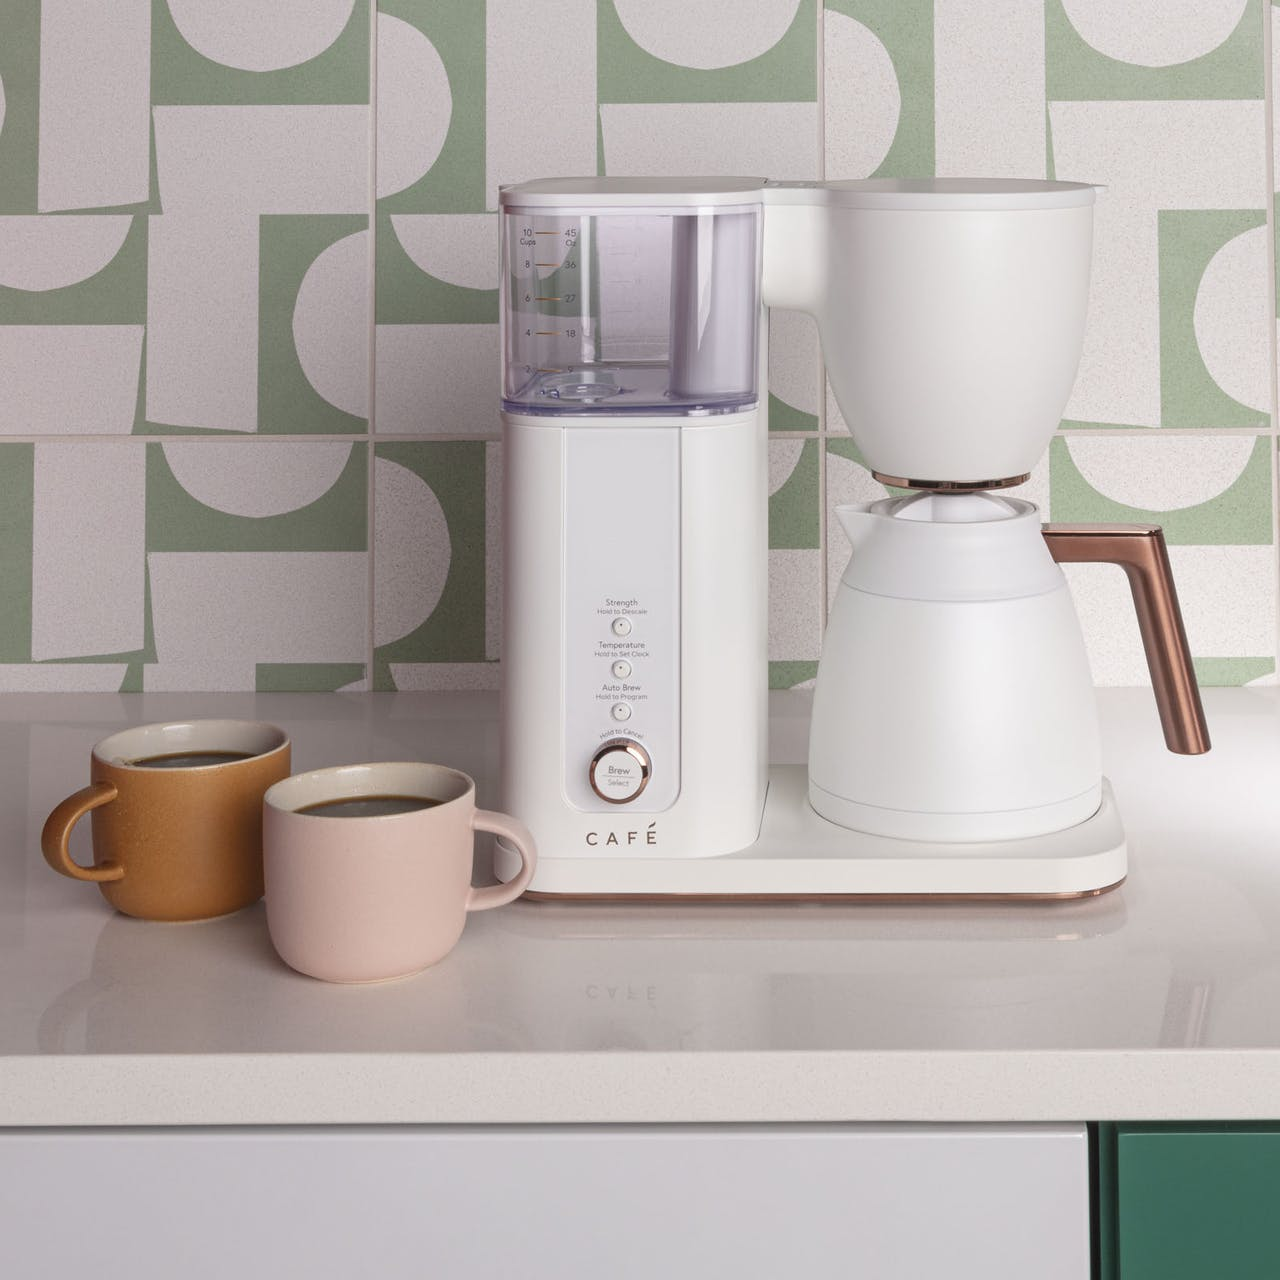 Café Specialty Drip Coffee Maker in matte white on counter with coffee cups